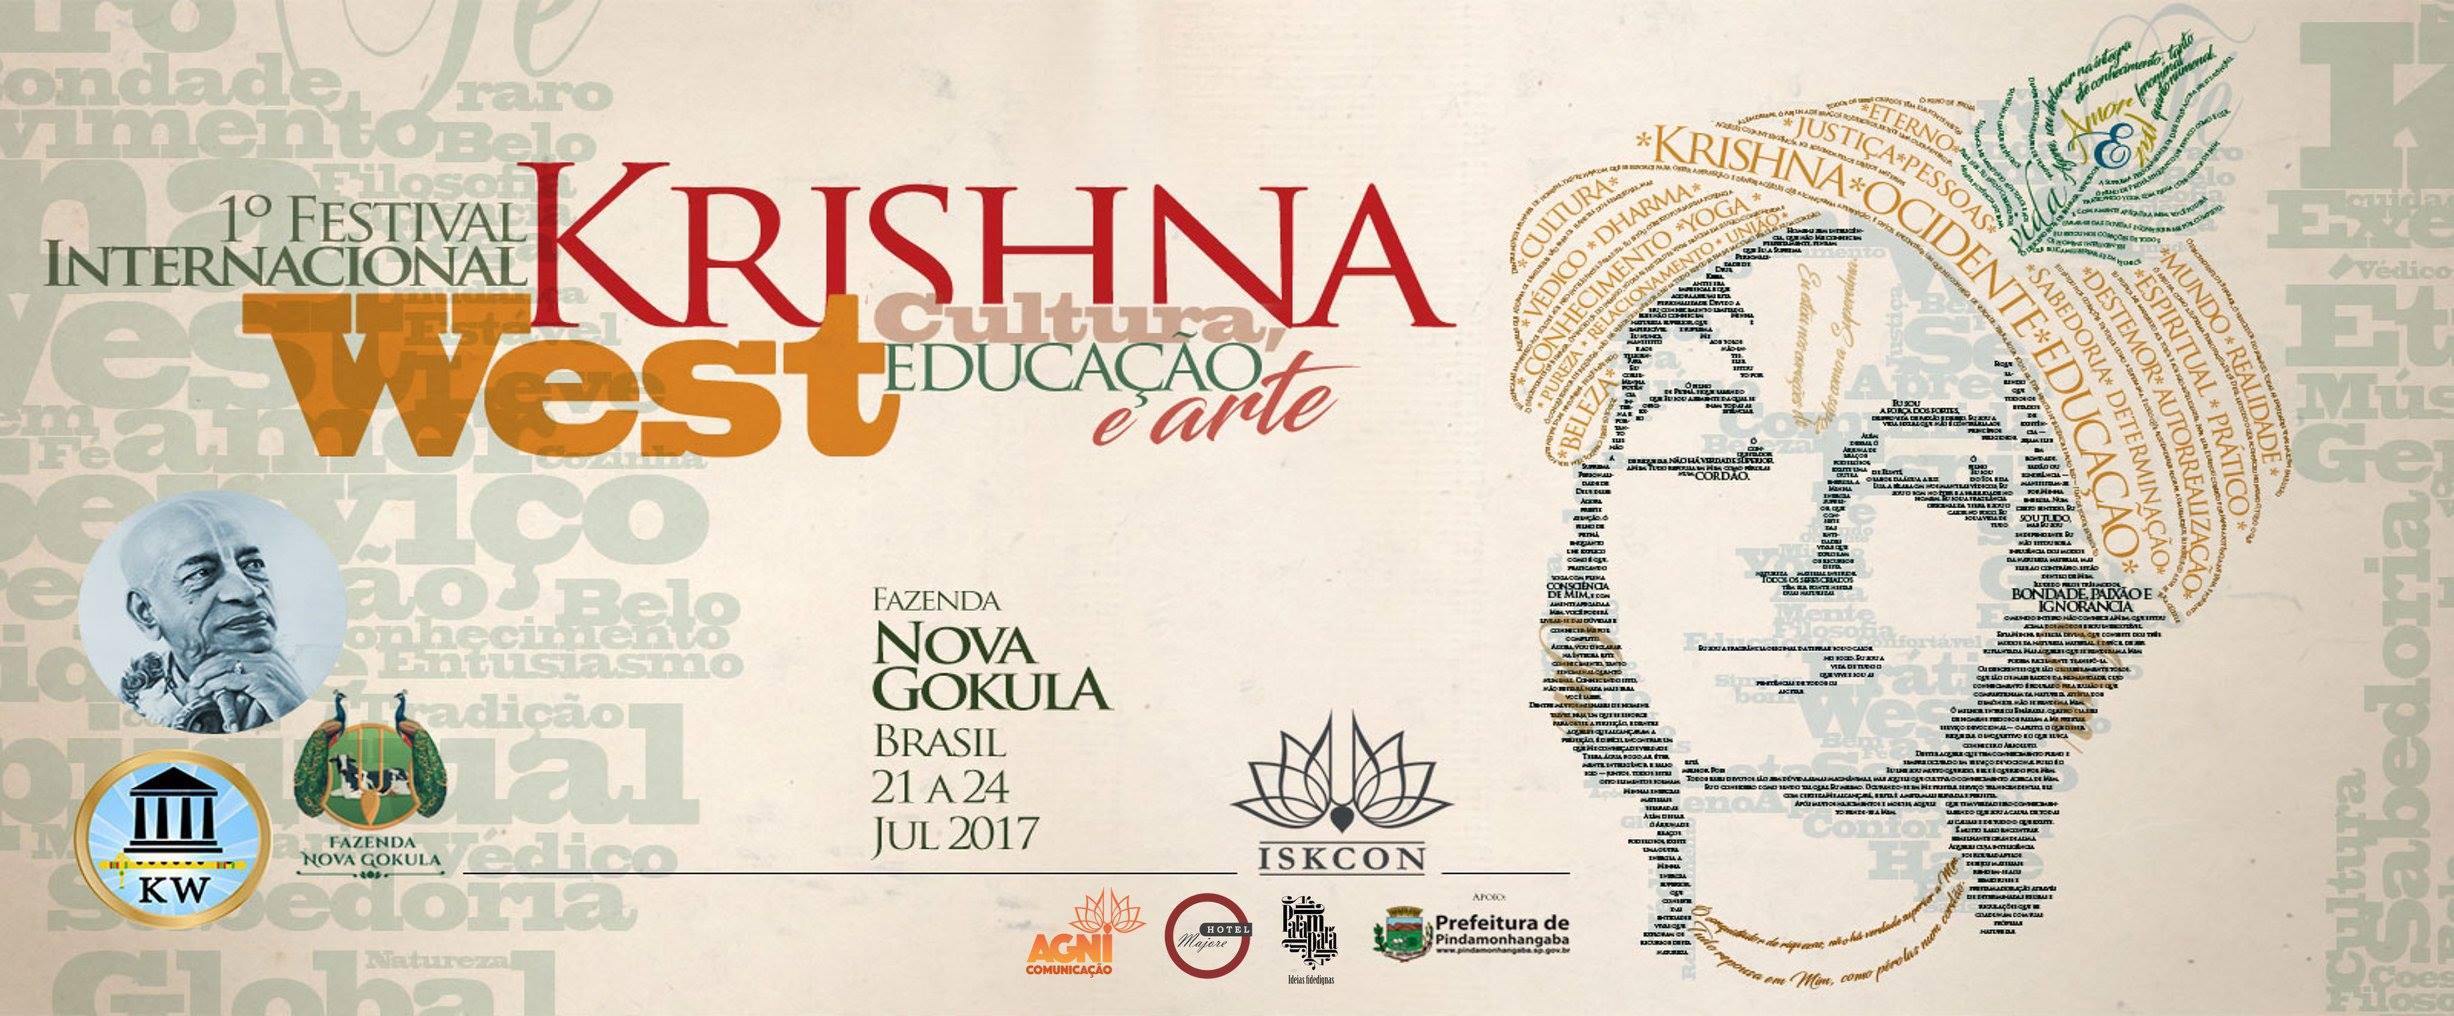 Stories From the First Krishna West International Festival